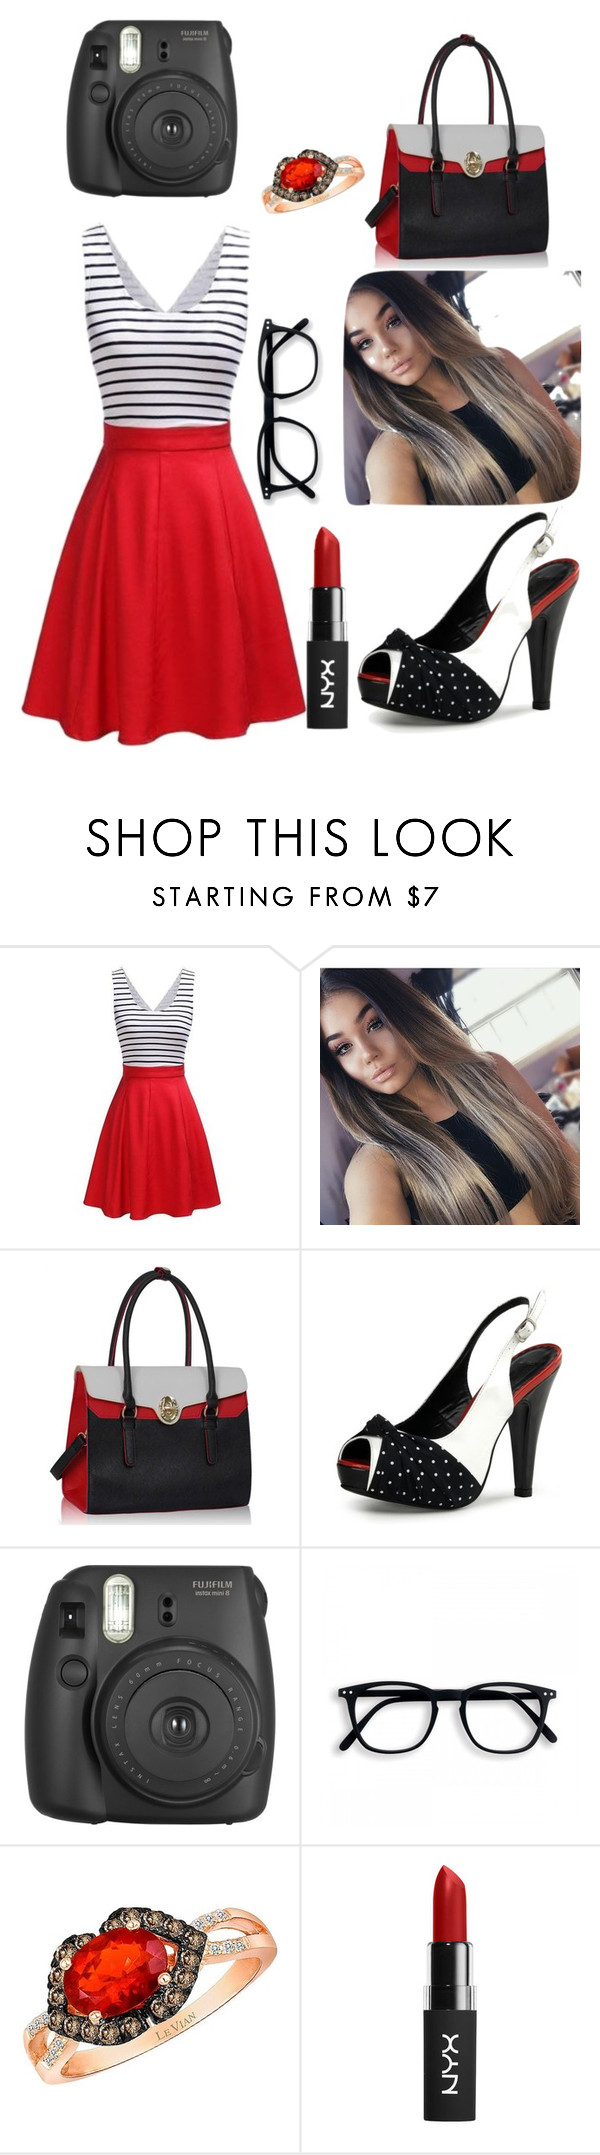 """Im real (smile honey)"" by ashleynicole22 ❤ liked on Polyvore featuring Fujifilm and LE VIAN"